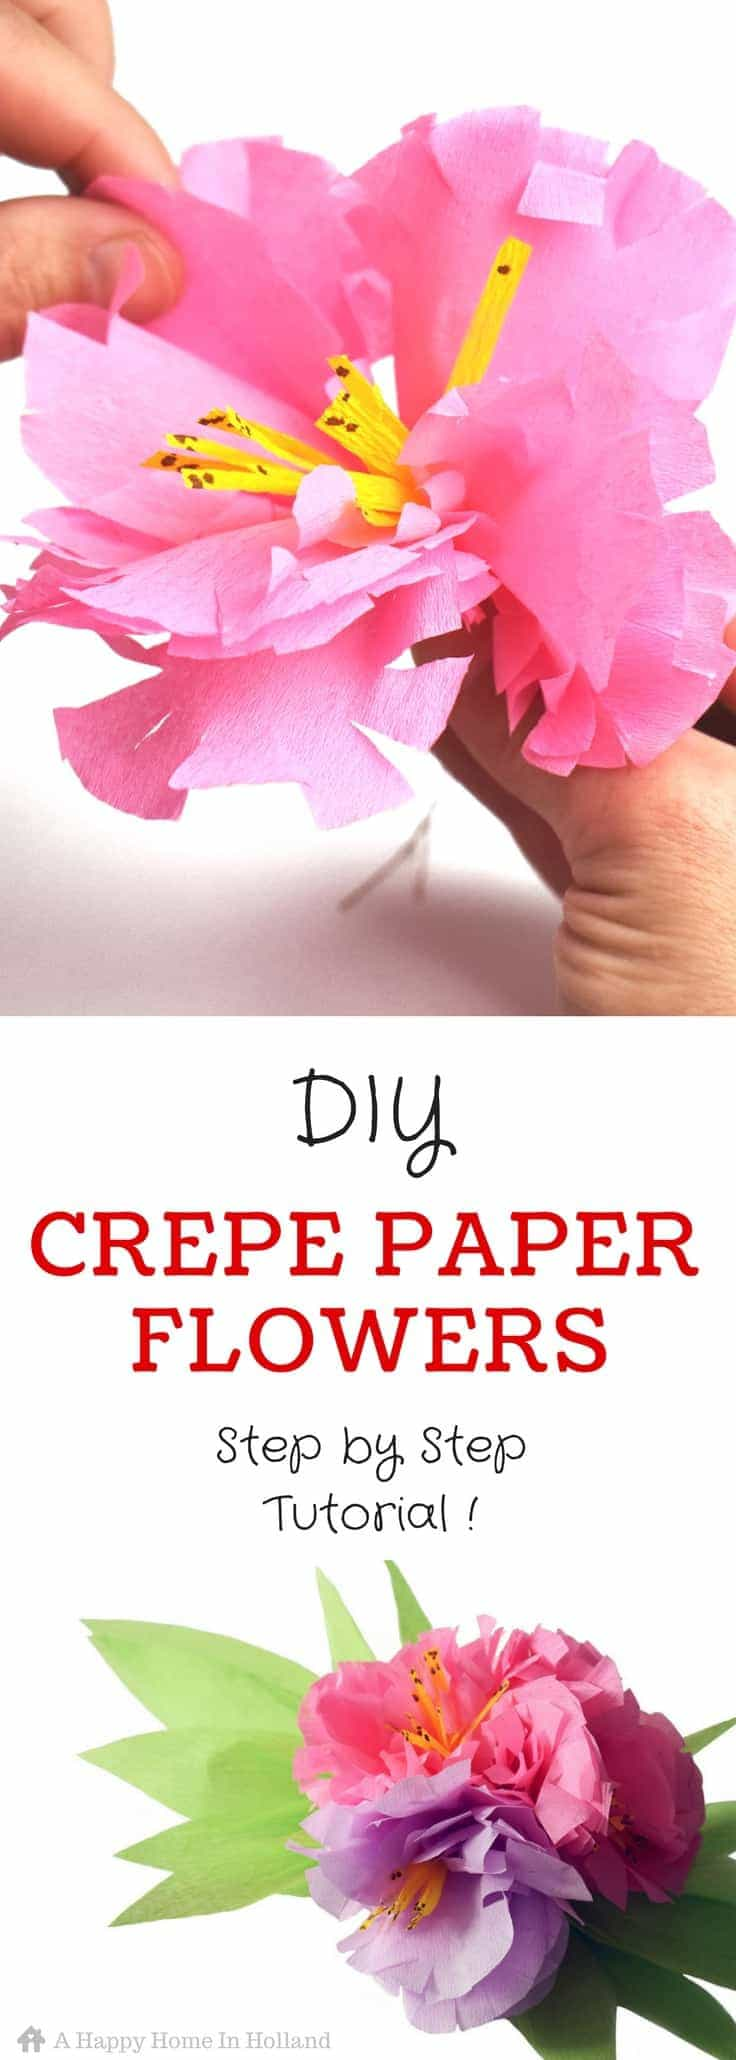 Exotic crepe paper flowers learn how to make a beautiful flower spray crepe paper flowers tutorial learn how to make pretty exotic flower sprays using just colored mightylinksfo